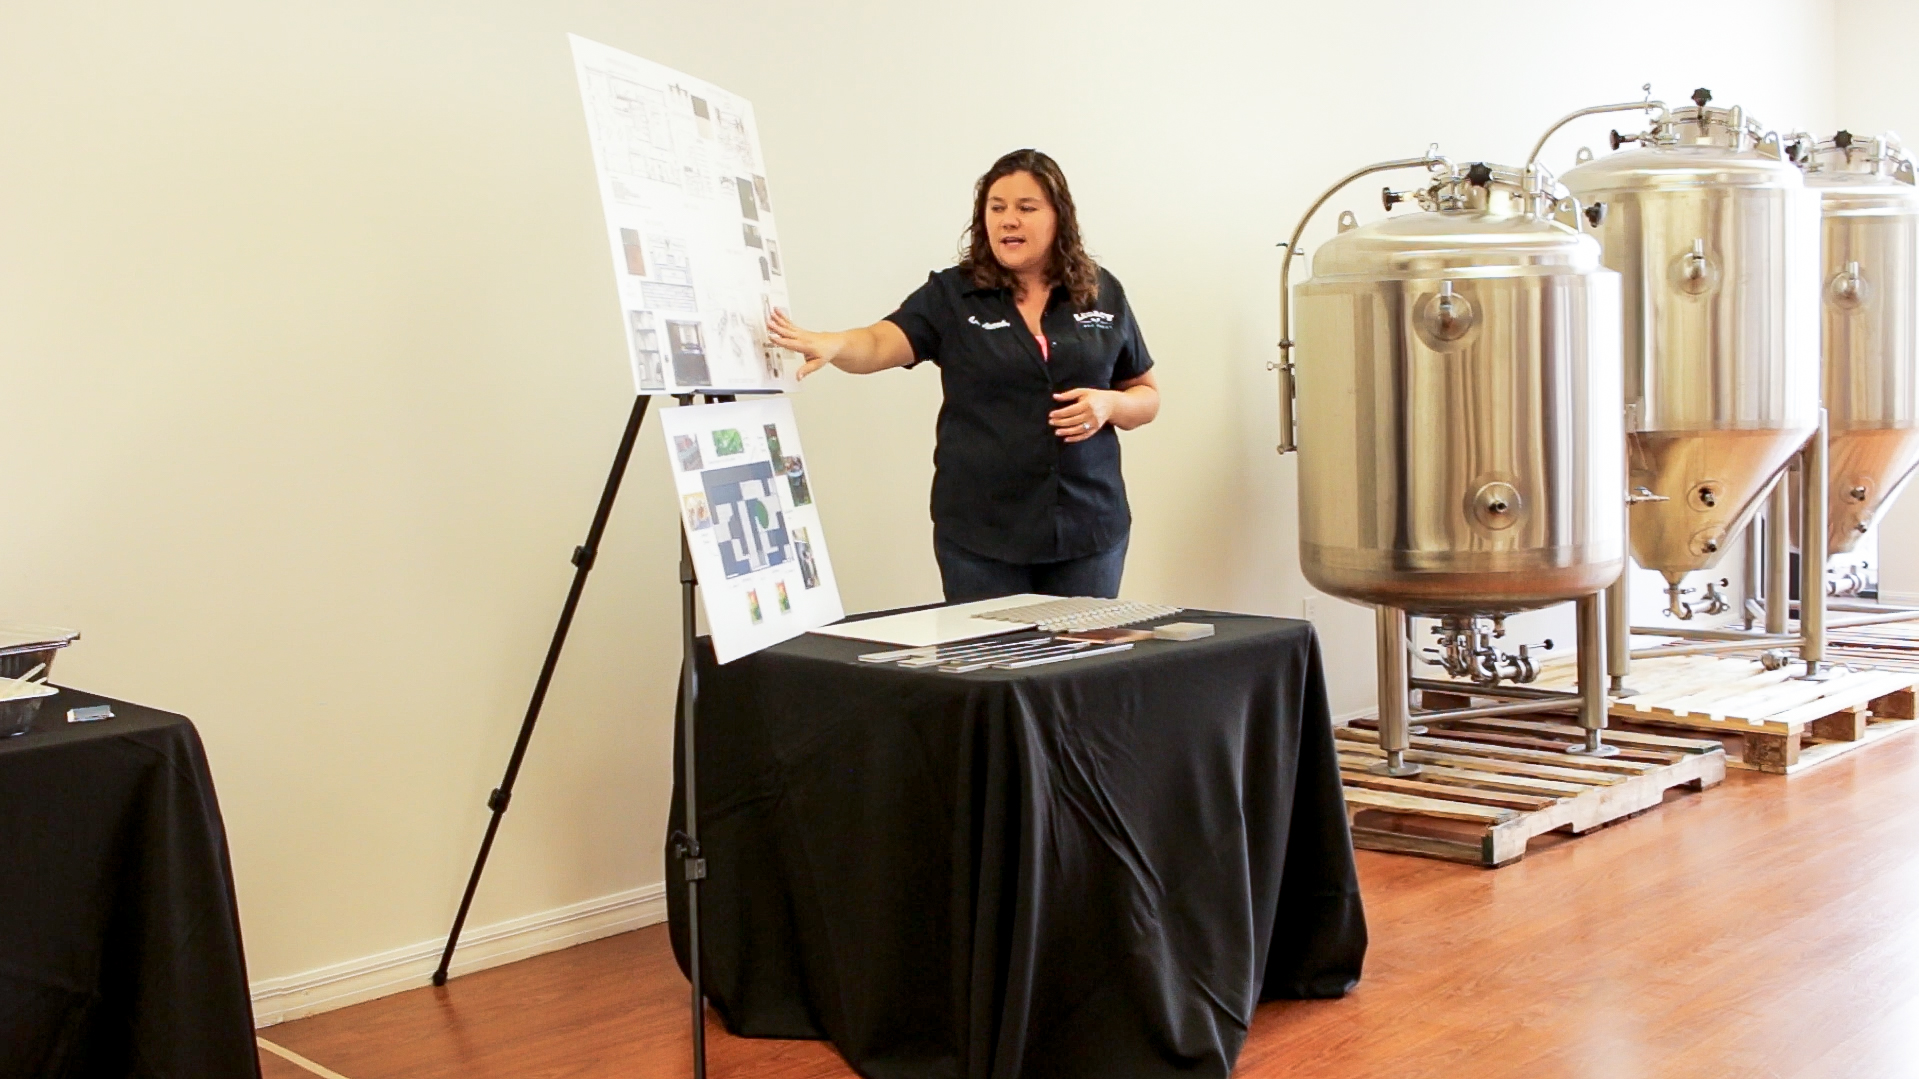 Owner Liz Jacobs discussing the plans for the upcoming Brewery & Taproom